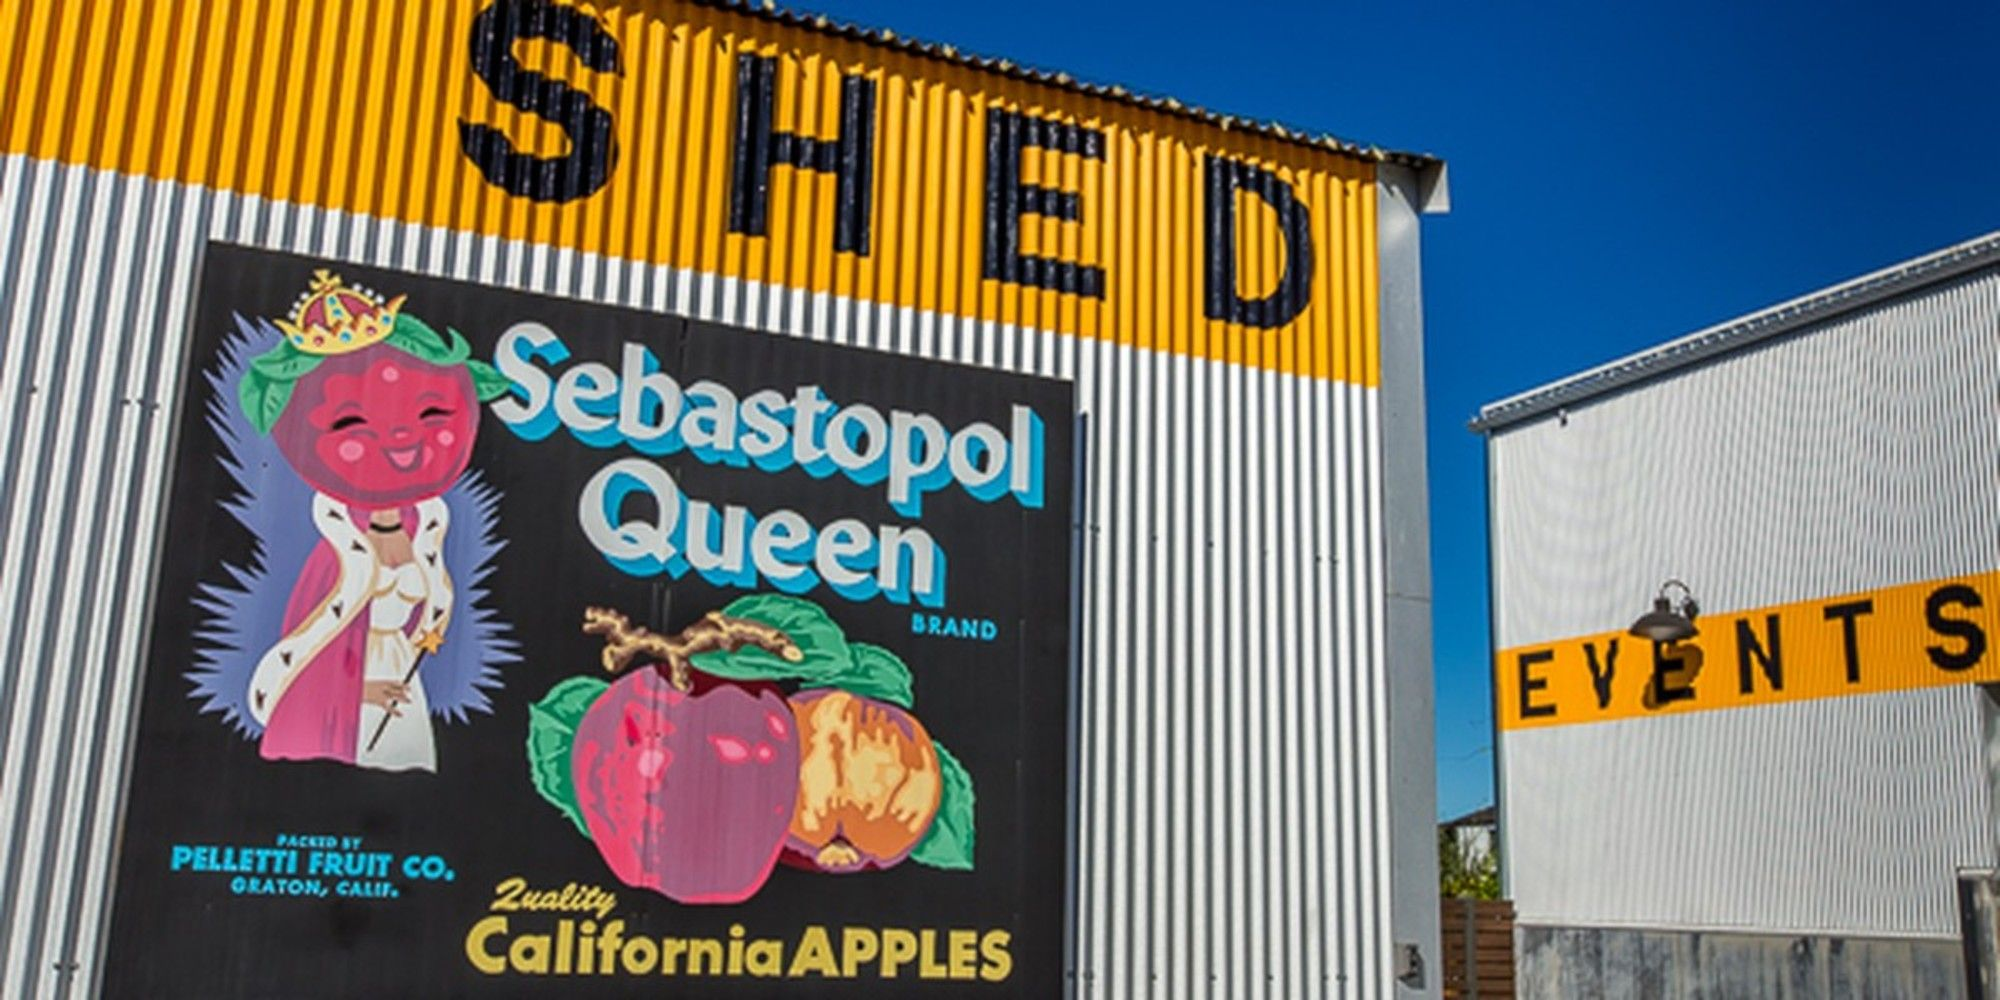 Autumn in Sebastopol: Your Guide to Apple Picking, Craft Cider, Pie + More - 7x7 Bay Area